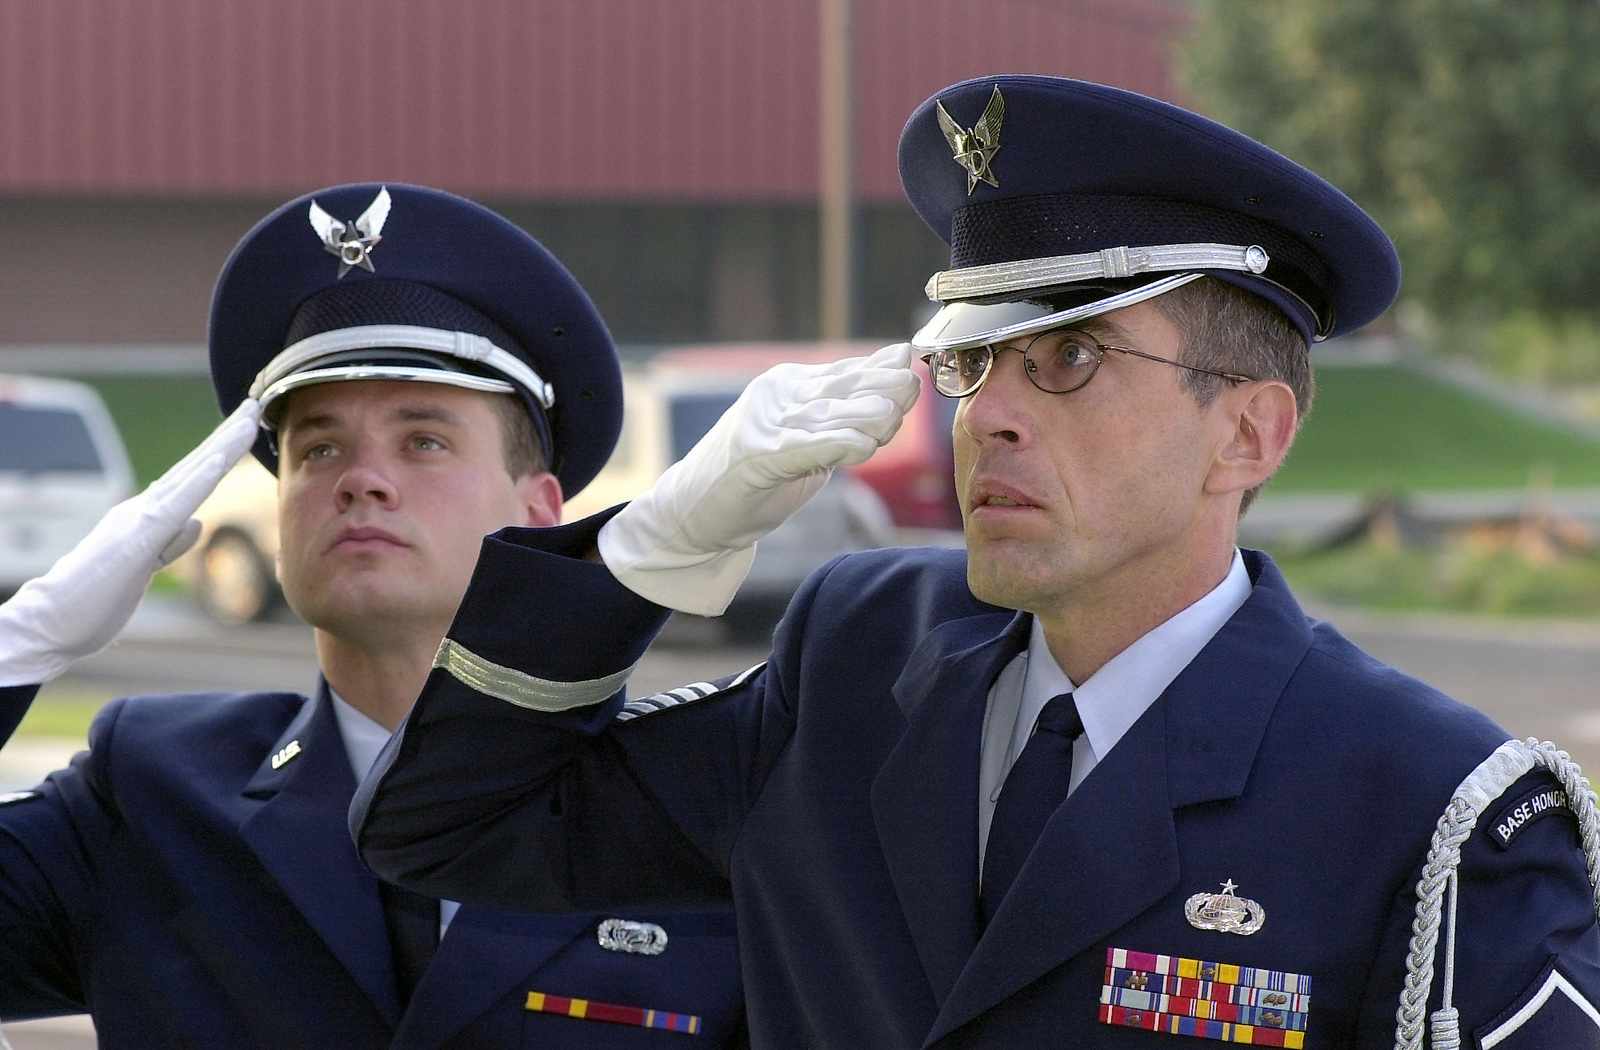 US Air Force (USAF) SENIOR AIRMAN (SRA) Mickey Uphold (left) and USAF MASTER Sergeant (MSGT) Paul Hammond, both assigned to 138th Fighter Wing (FW), Oklahoma (OK), Air National Guard (ANG) Honor Guard, stand and salute as the flag is raised in front of the new Headquarters and Support Complex Building for the 138th FW, Tulsa, International Airport (IAP), located in Tulsa, OK